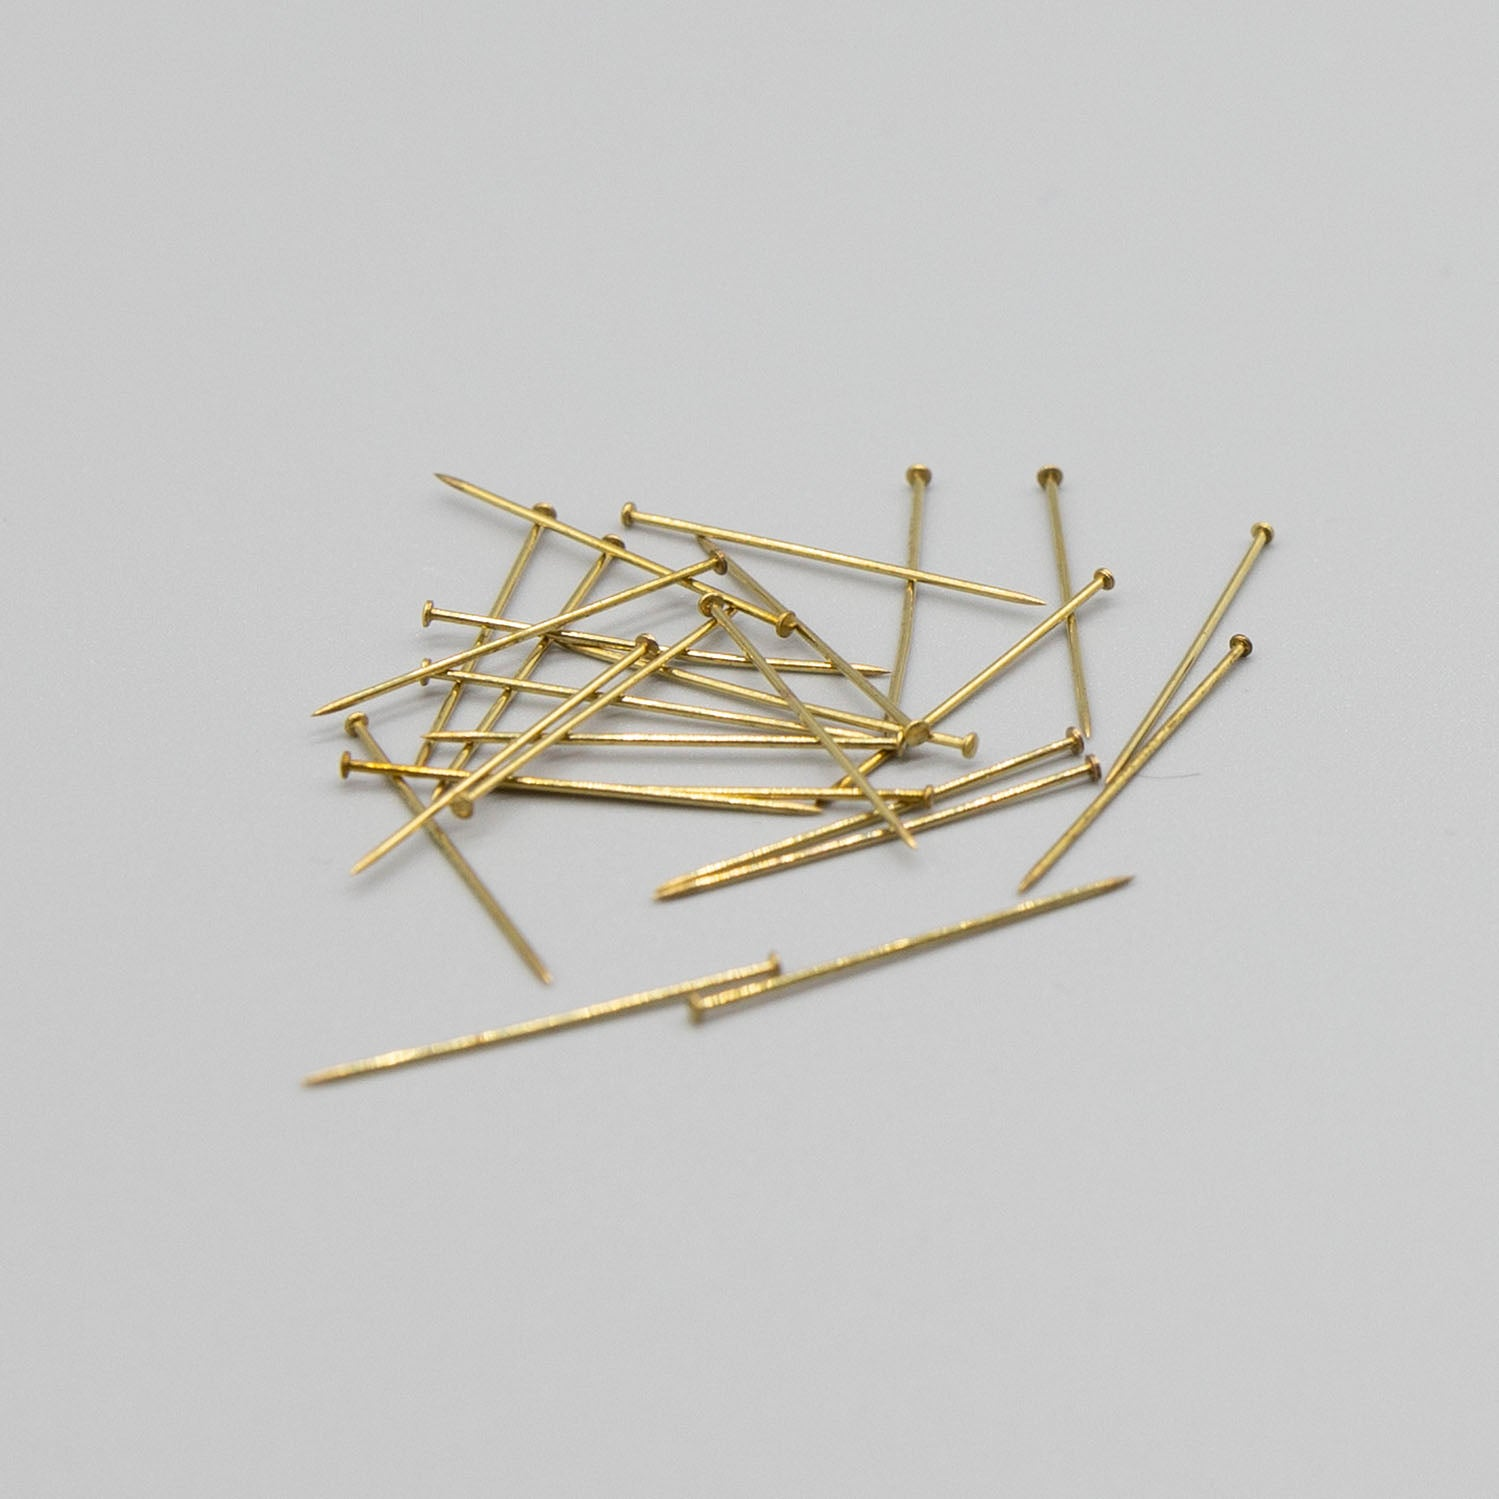 Brass Sewing Pins